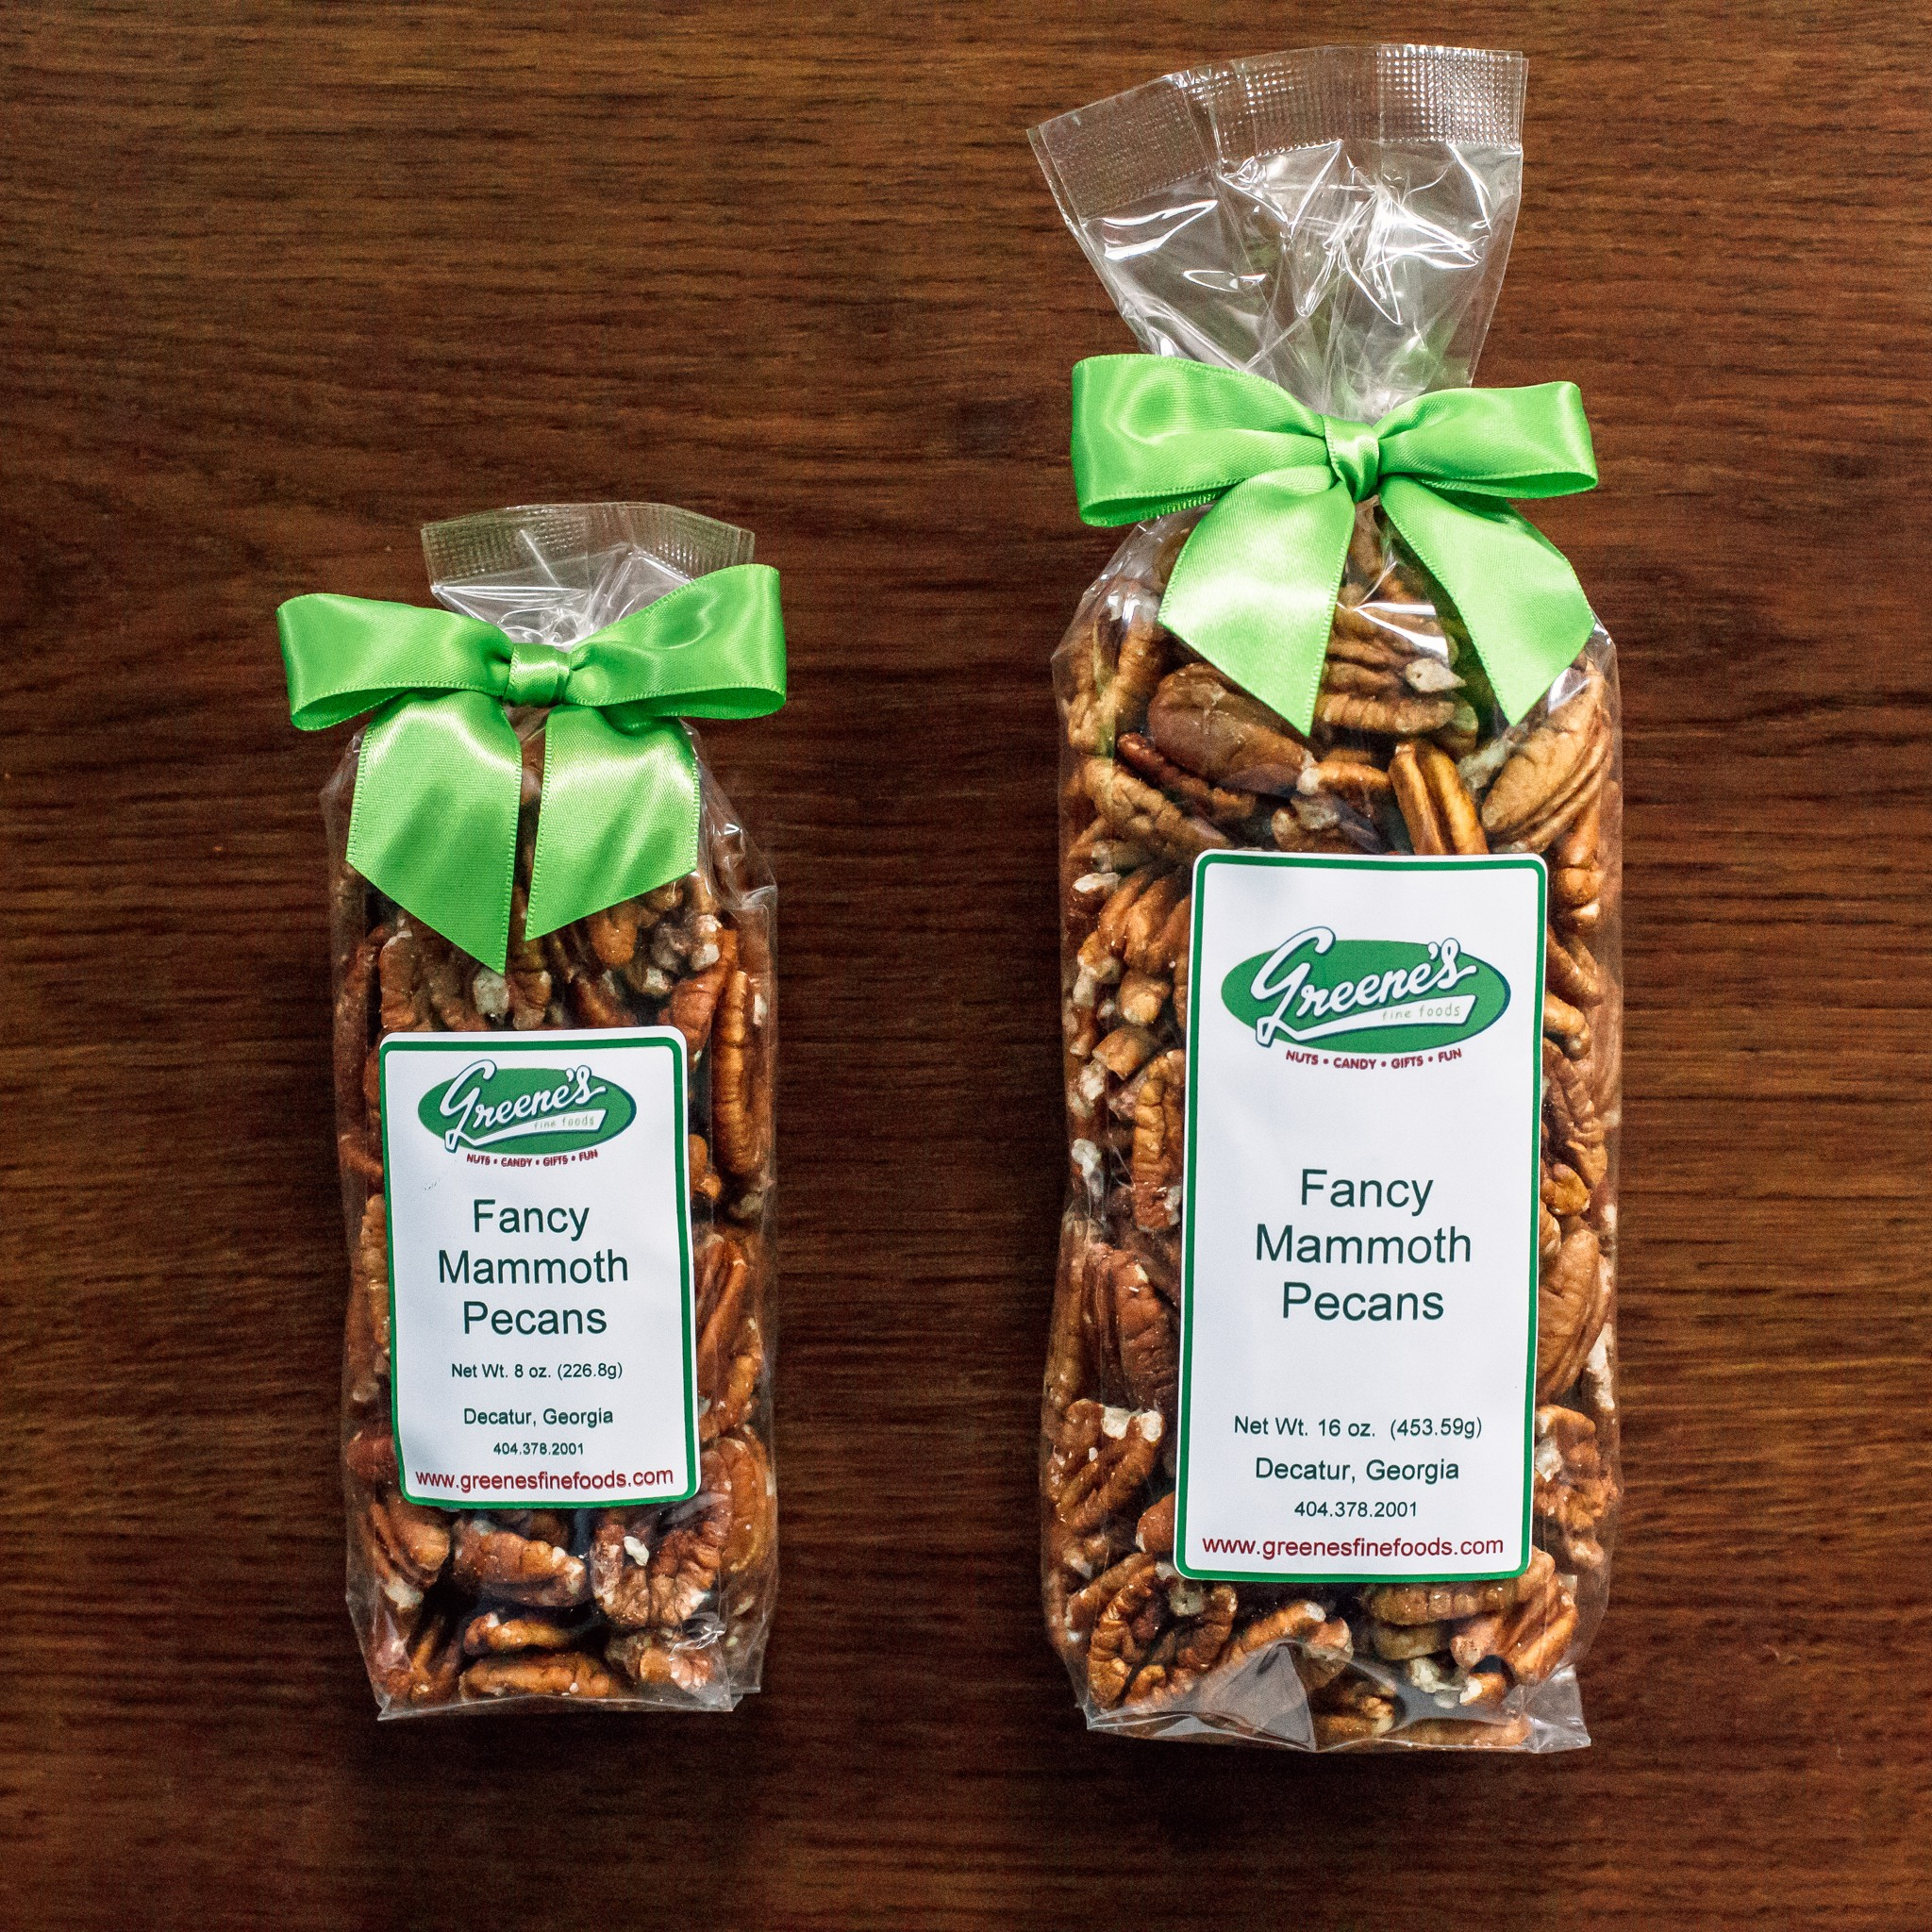 Fancy Mammoth Pecans Unsalted